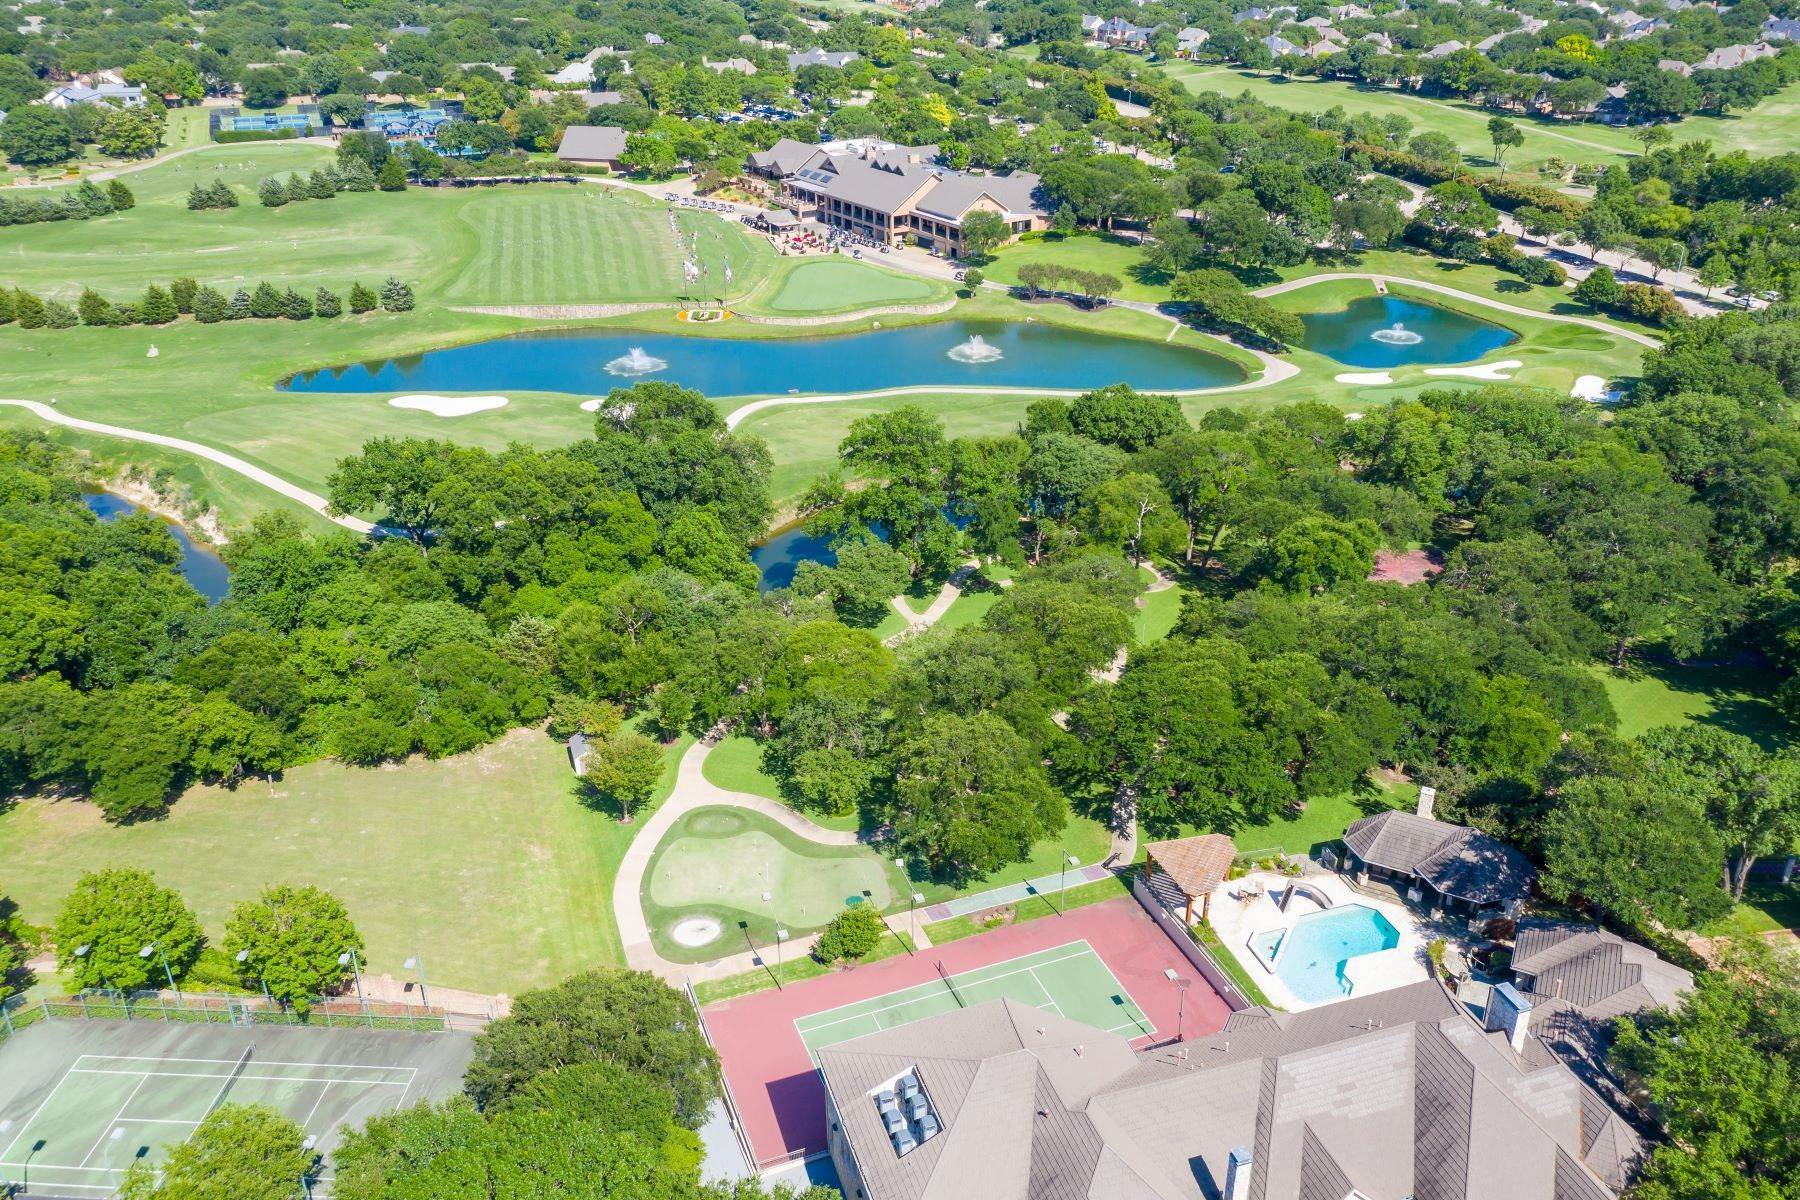 Single Family Homes for Sale at Willow Bend Estate 2104 Willow Bend Drive Plano, Texas 75093 United States